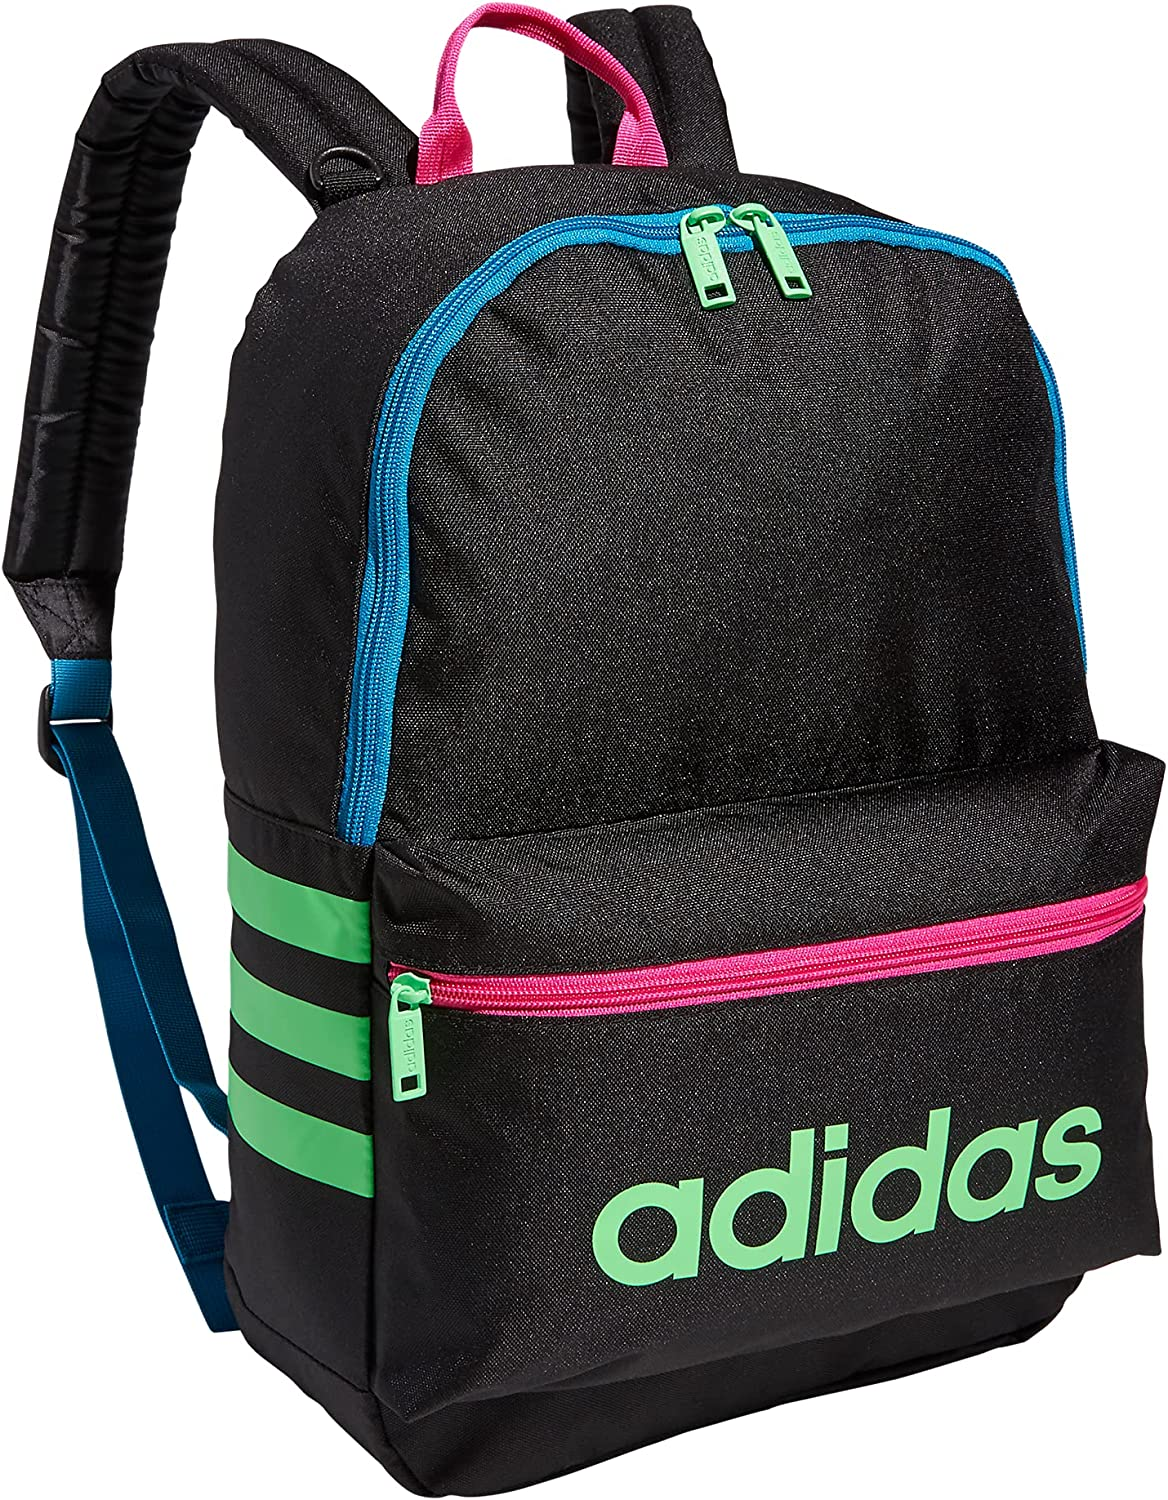 adidas Boys' Youth Classic 3S Backpack, Black/White, One Size